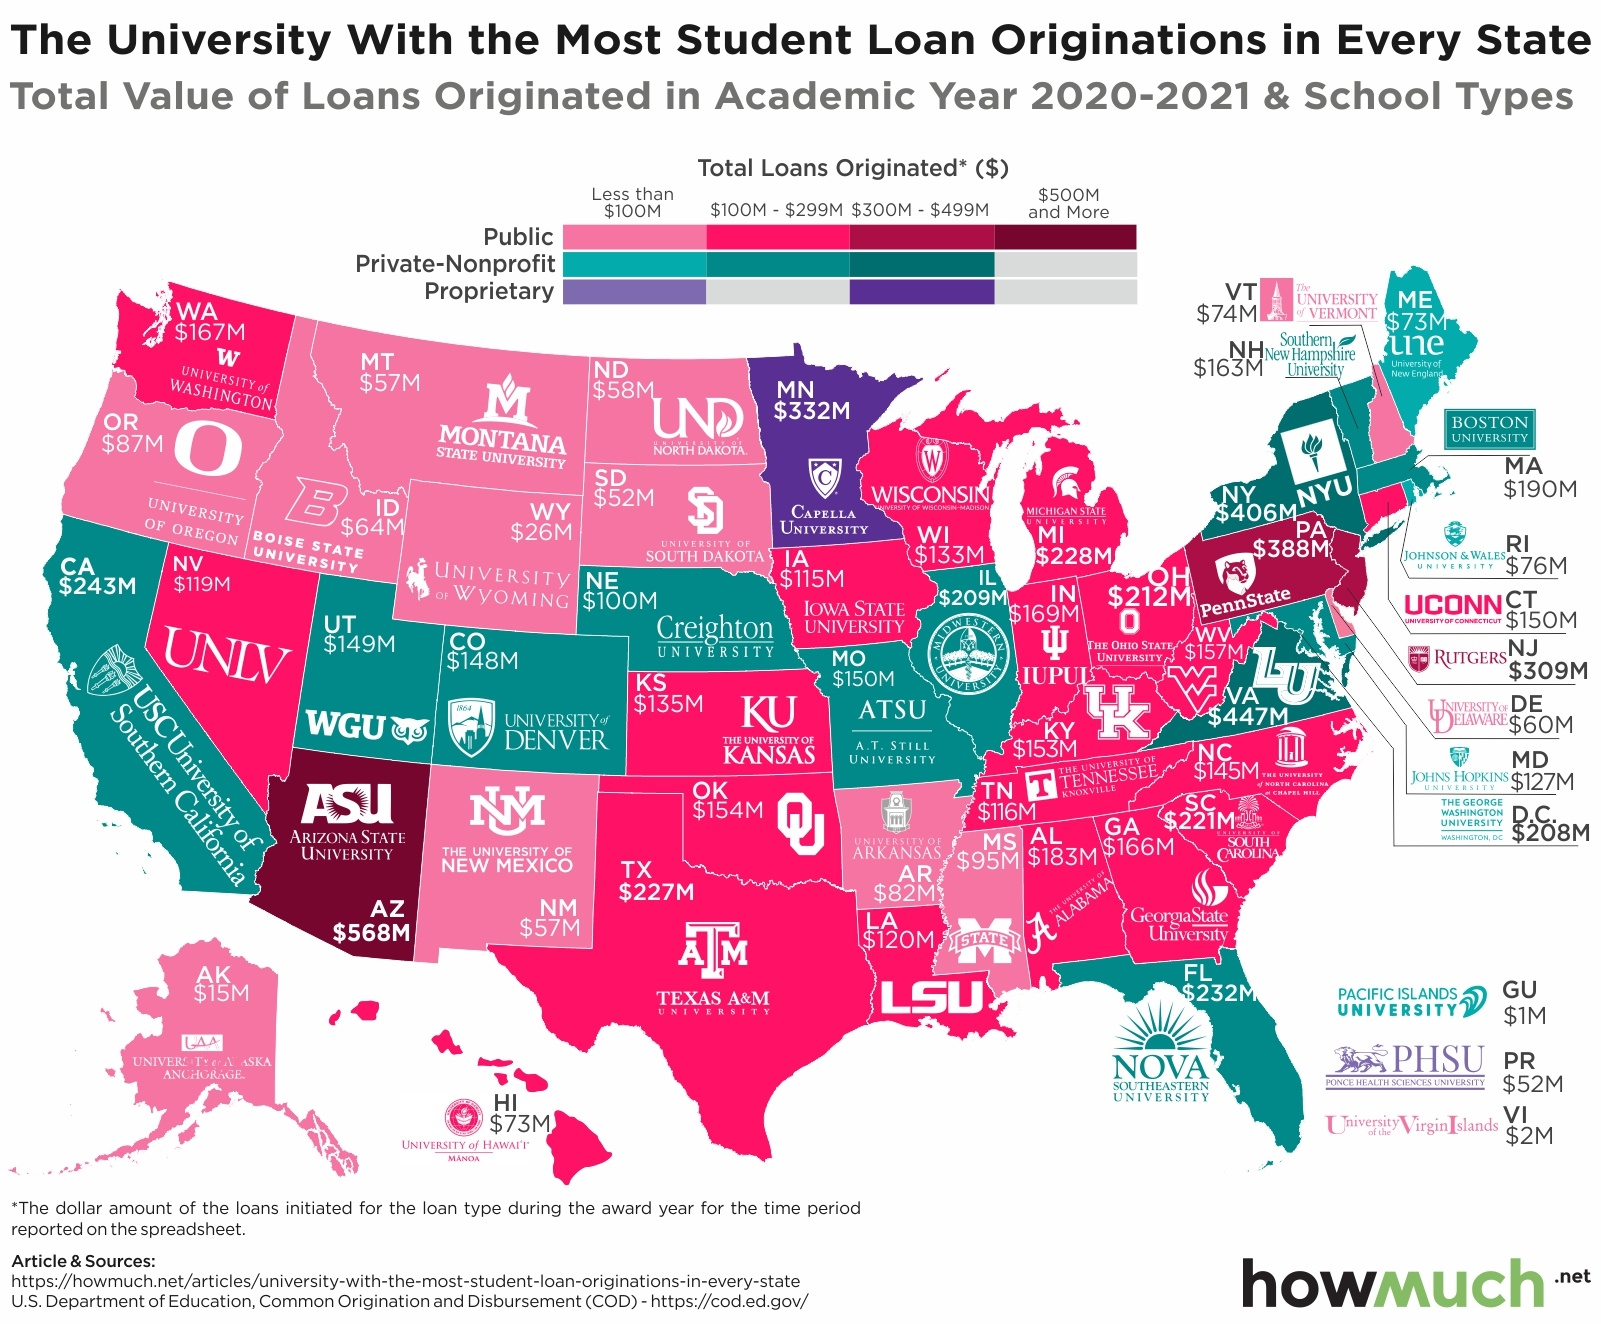 Universities with the highest loan originations